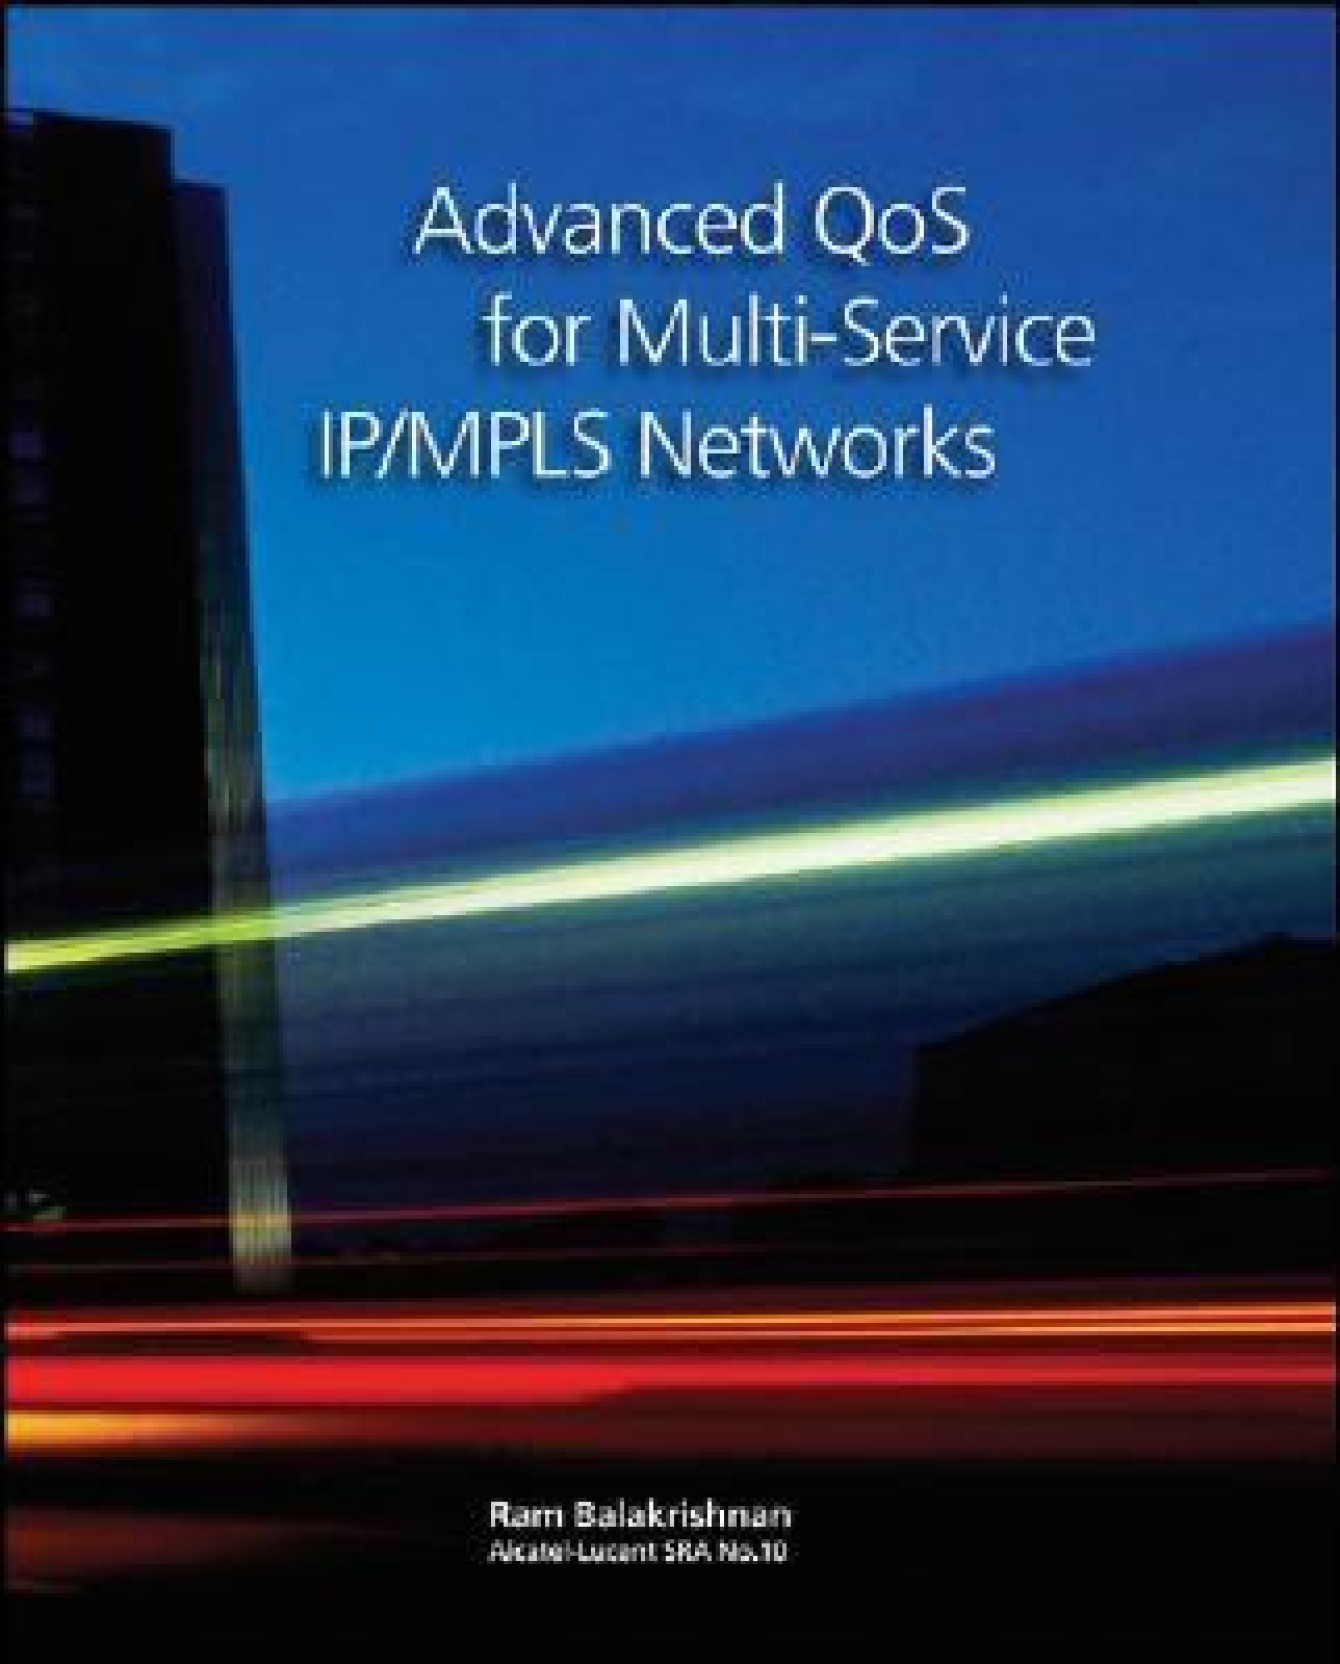 Advanced QoS for Multi-Service IP/MPLS Networks. Share